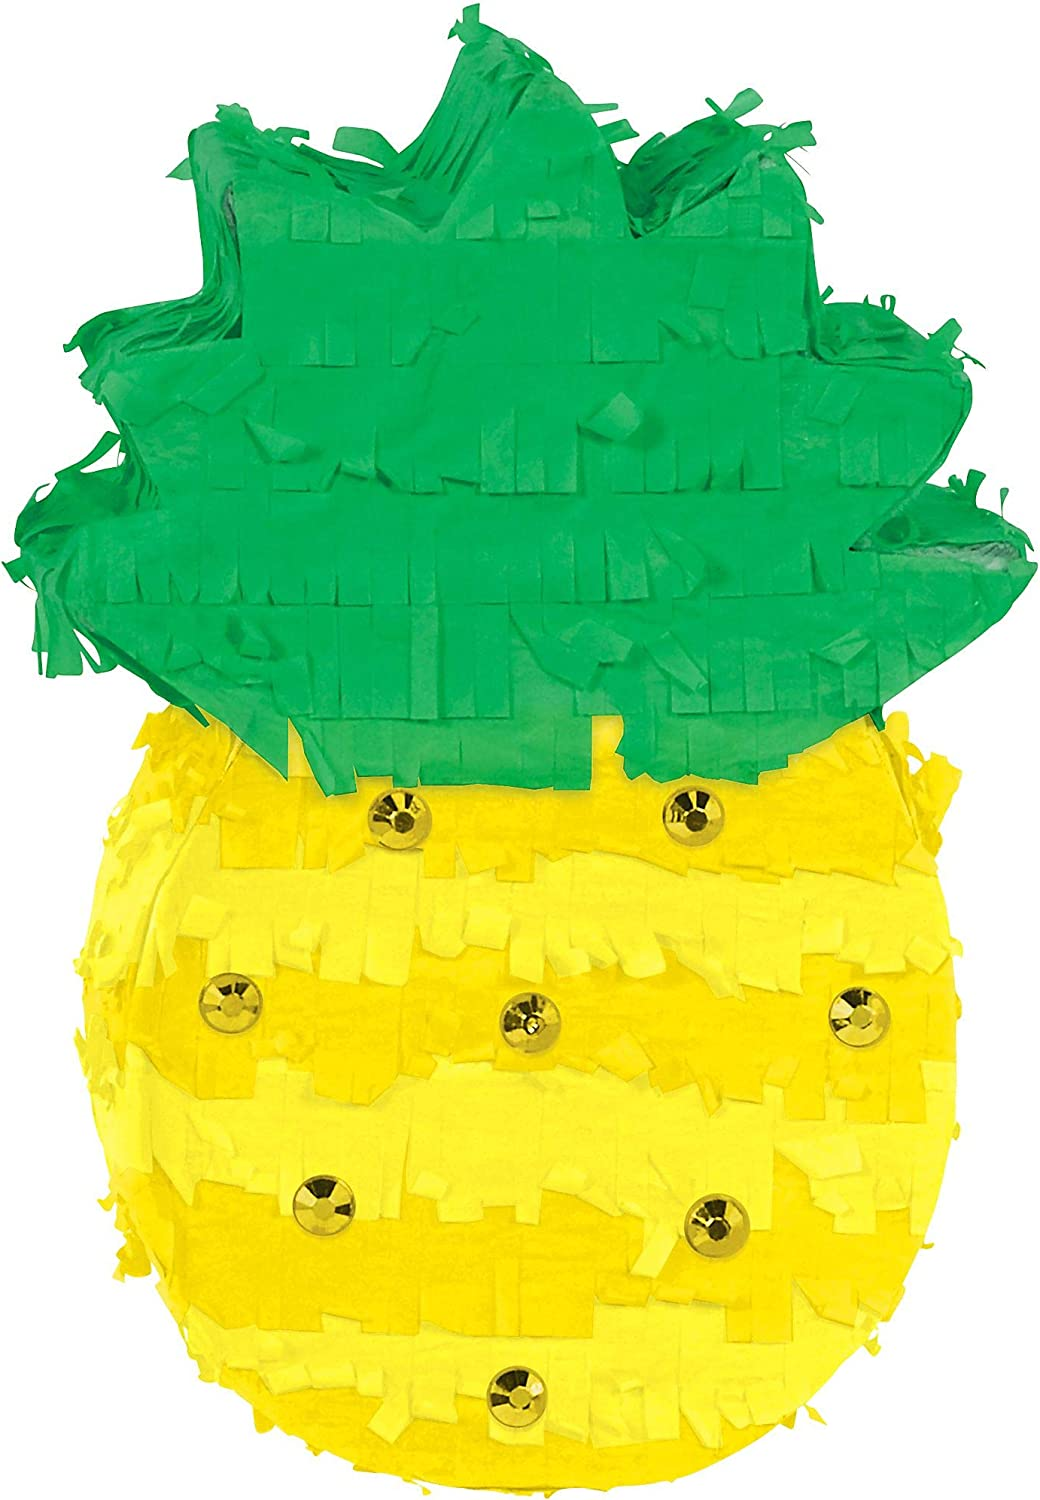 Amscan Party Mini Pineapple Ranking TOP2 Decoration Max 64% OFF yellow one green size